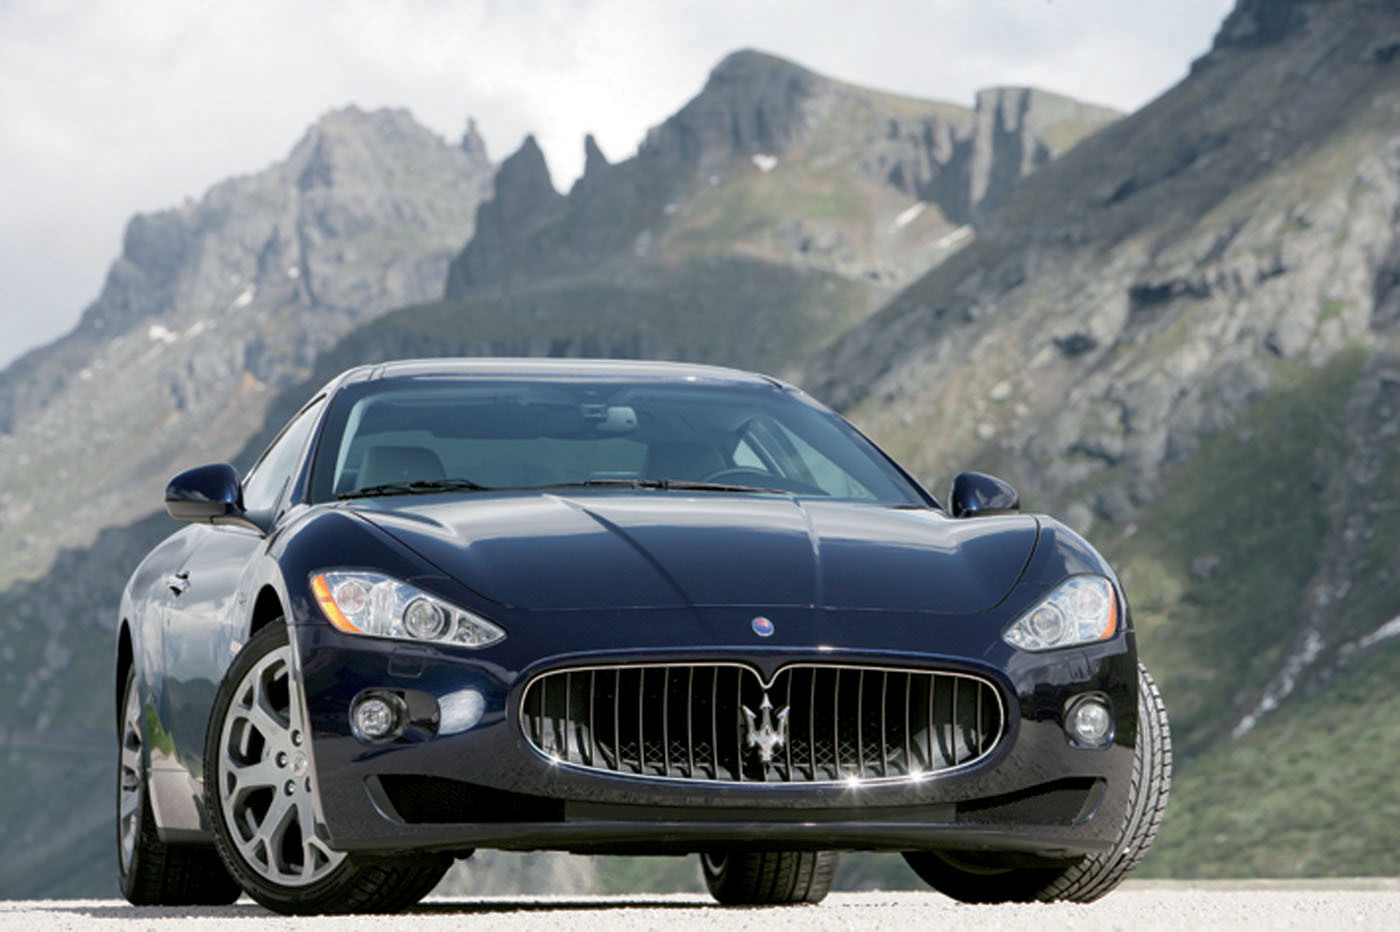 2008 Maserati Quattroporte - Information and photos - ZombieDrive